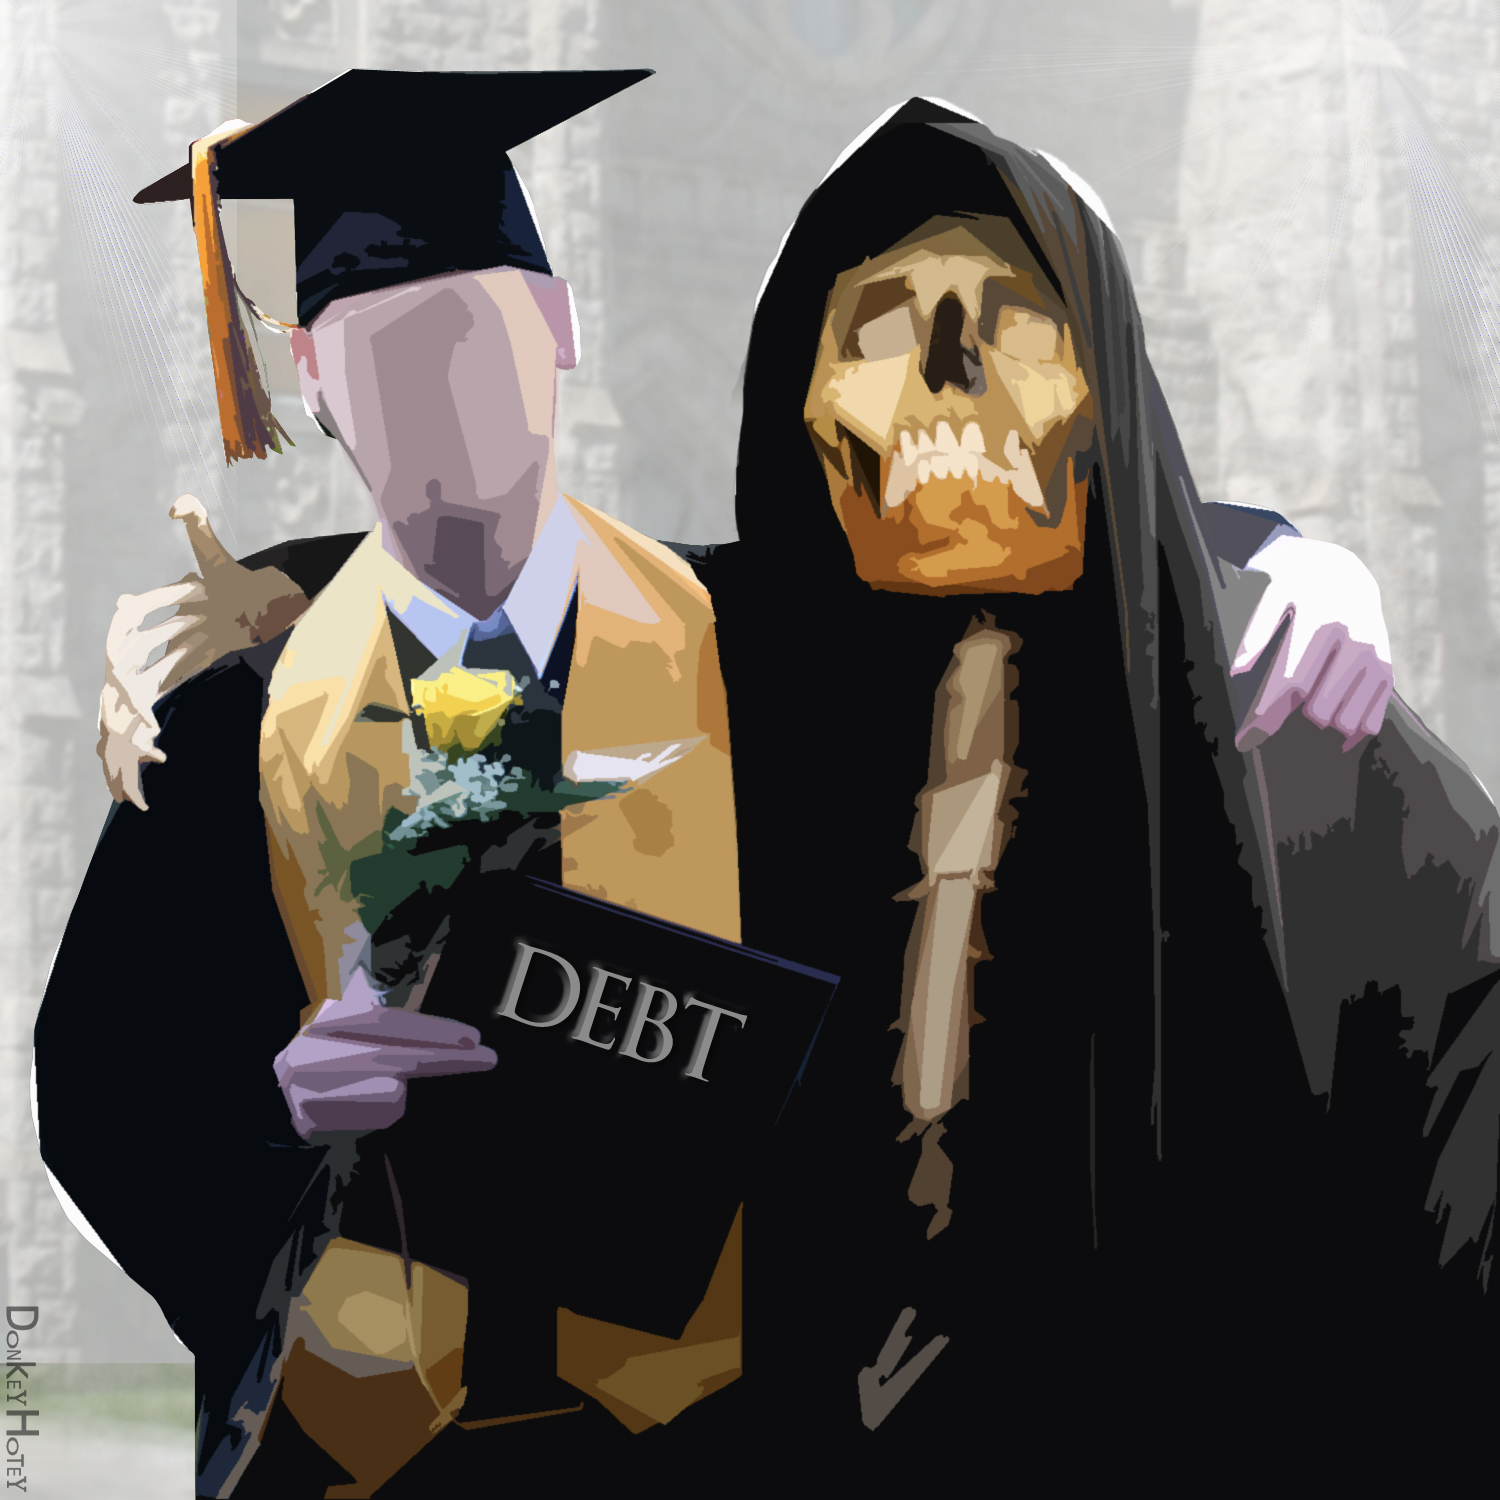 defer student loans instead of paying them